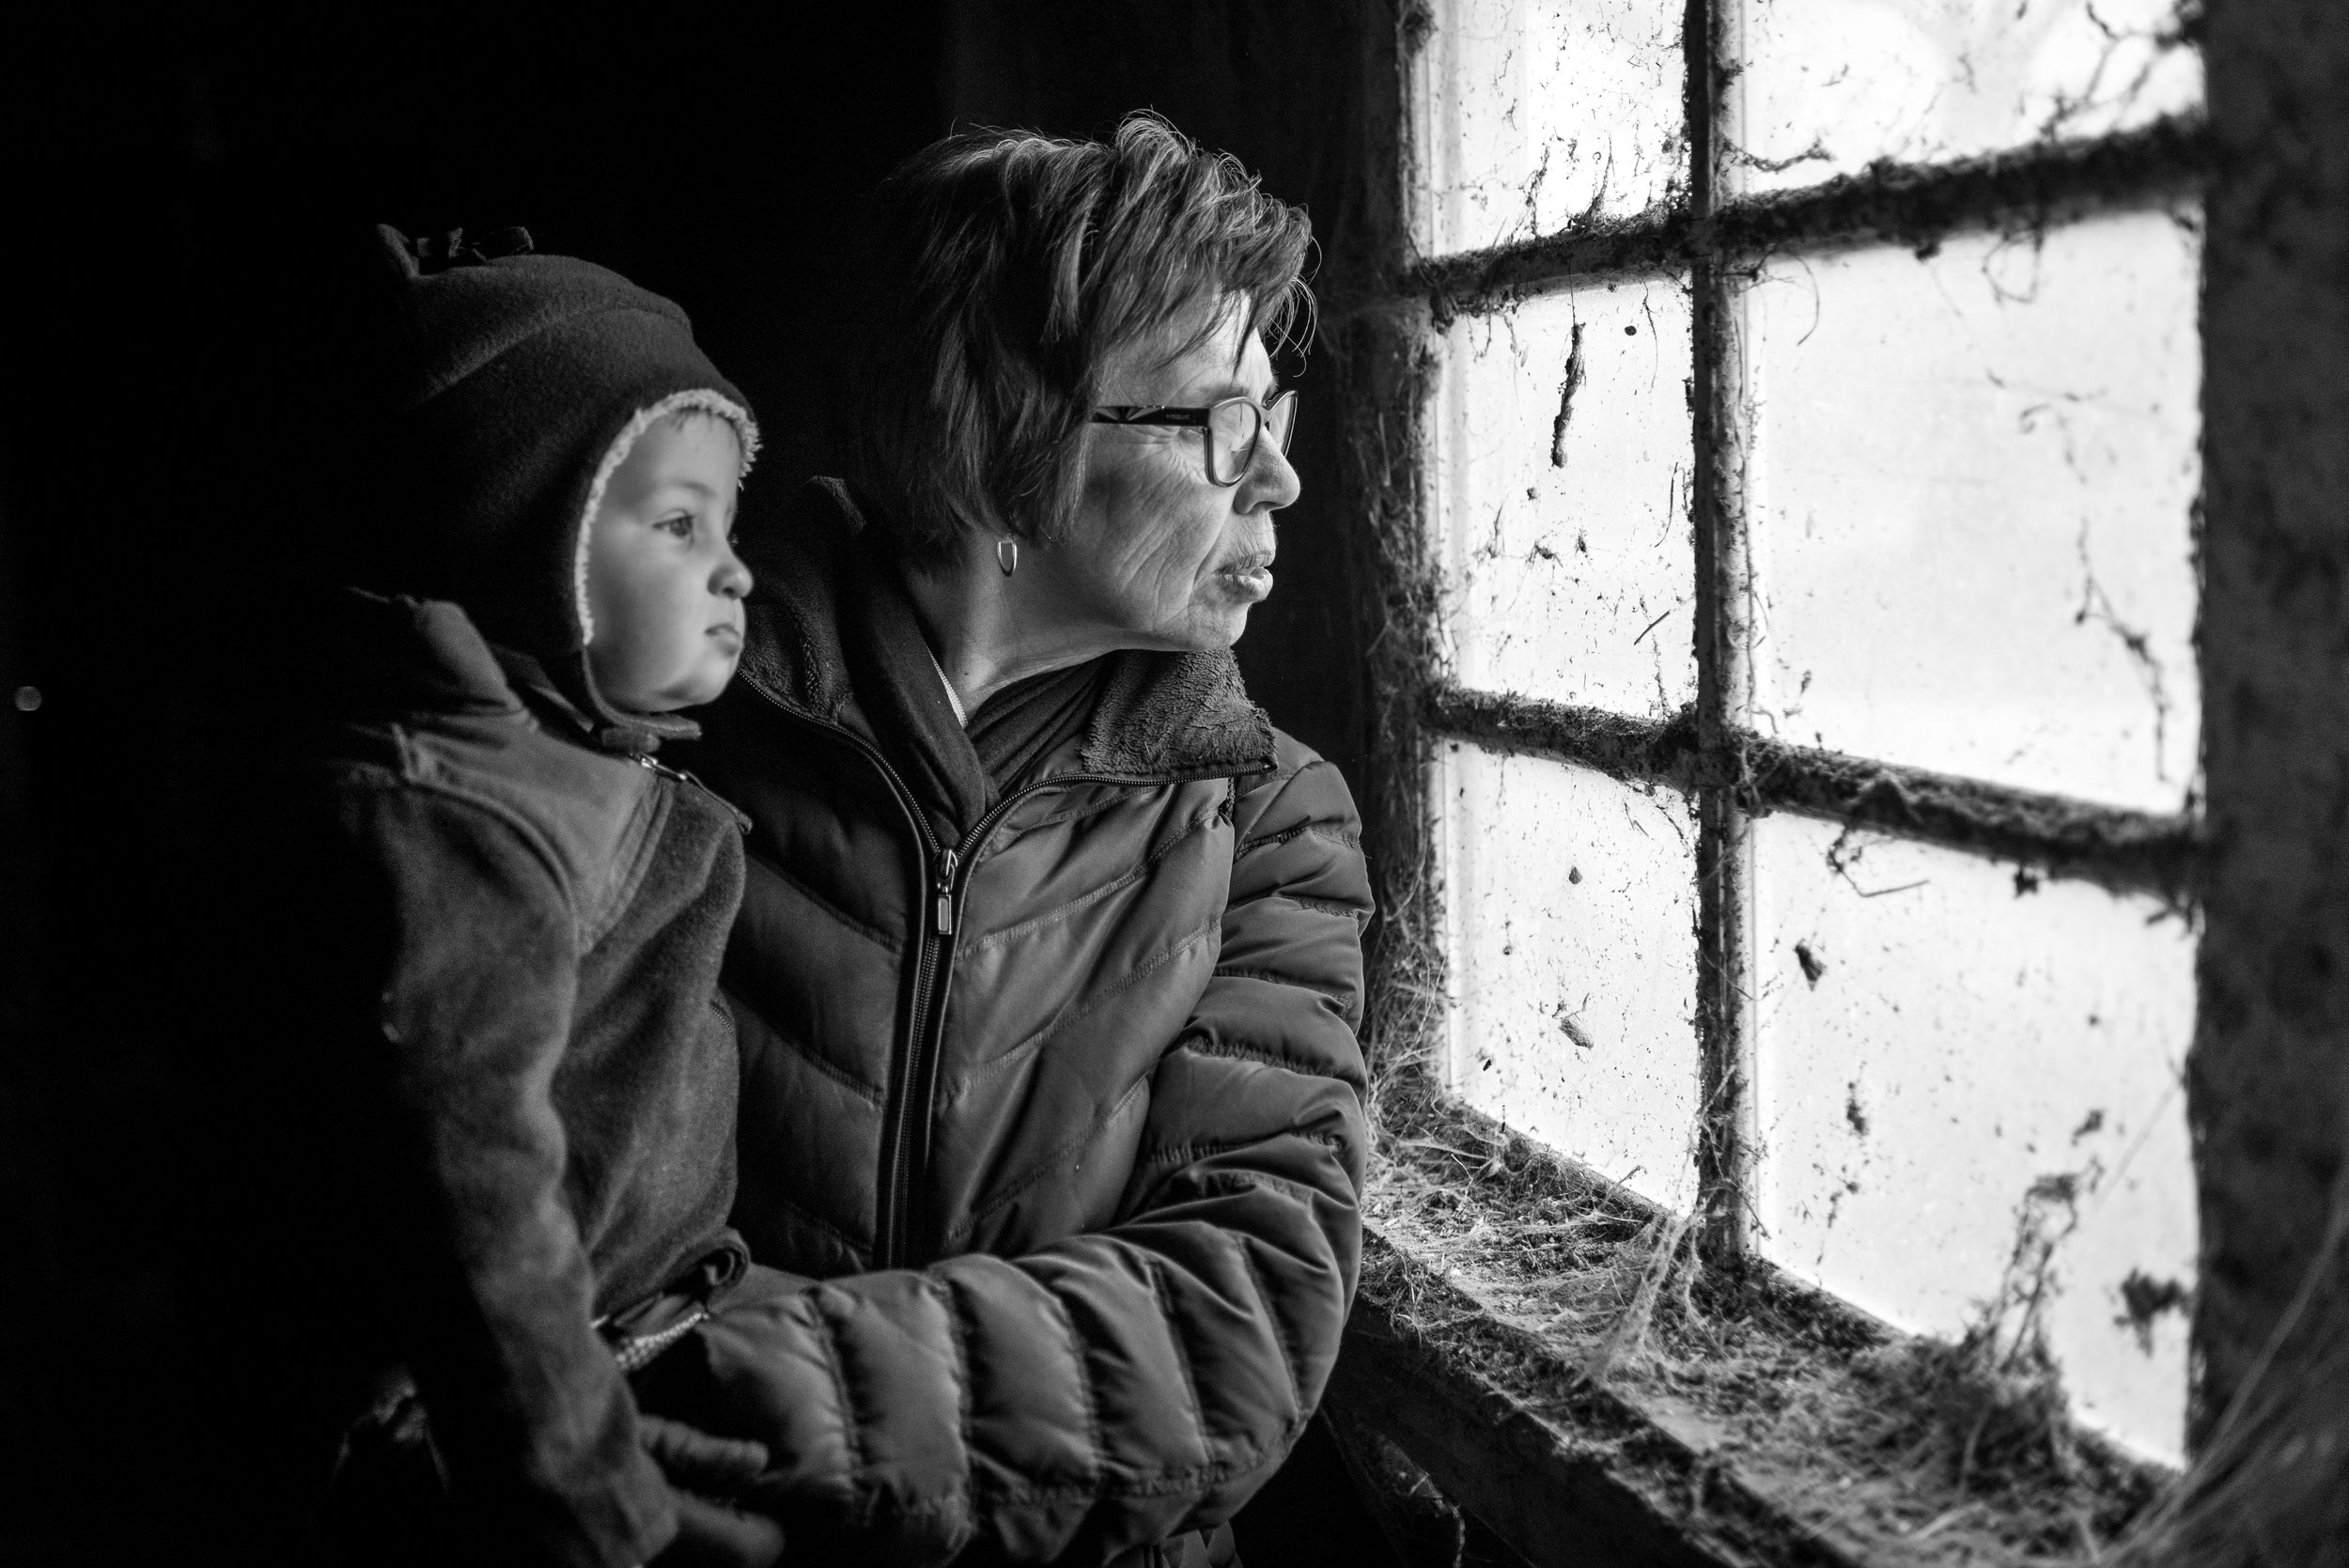 This fall we made a trip to a local farm to see some puppies, chickens and sheep. It was quite an adventure. We enjoyed petting the adorable golden retriever puppies in the middle of this dark and dingy barn. This picture was made as Sharon was looking out the window with Clayton. Sharon grew up on a farm and spent many hours in barns just like this one. This reminds me of the importance of passing on our life experiences to the next generation. How will they know if we don't show them?